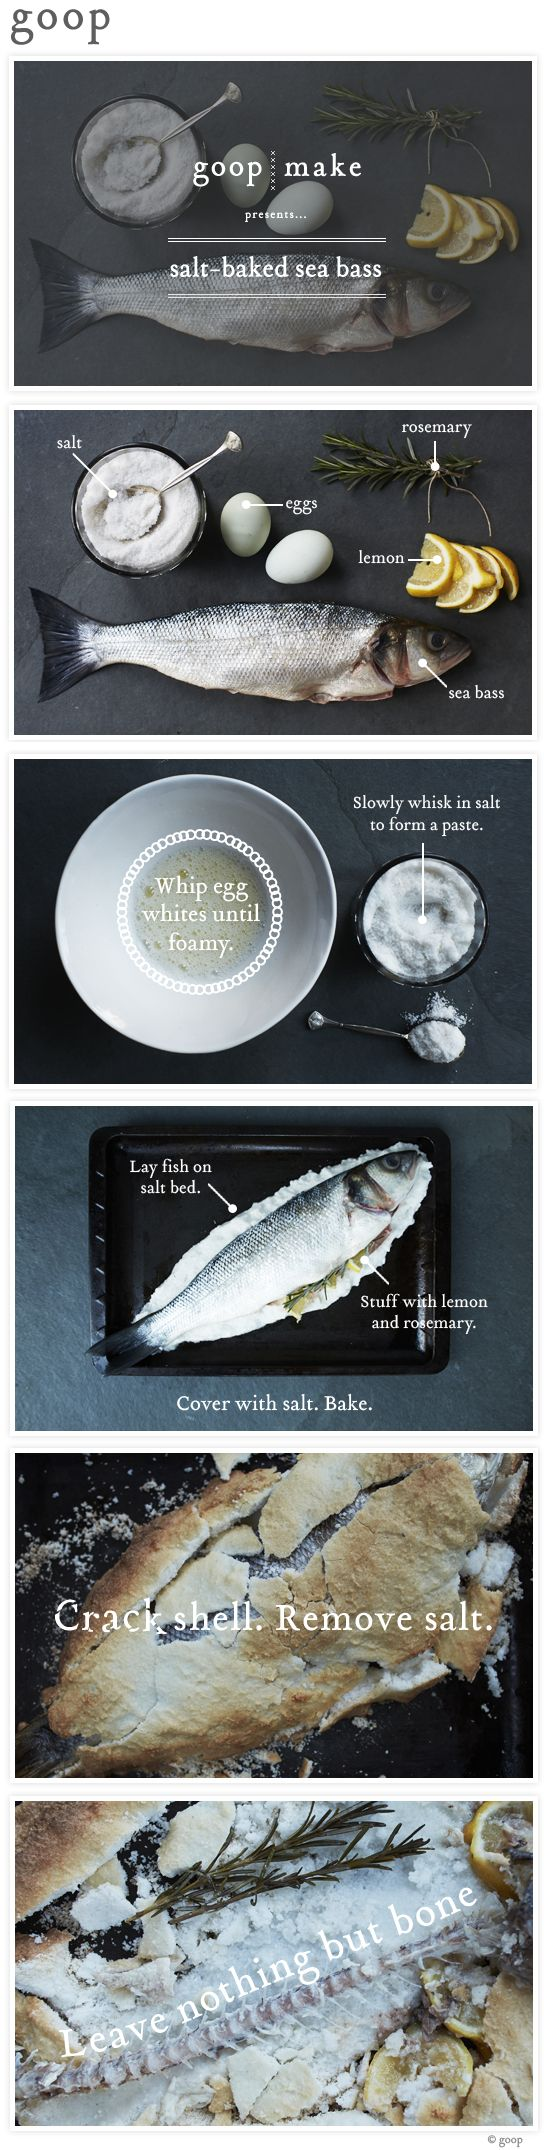 Salt-baked sea bass #goopmake. I tried this method and the fish was delicious! I swear by it!